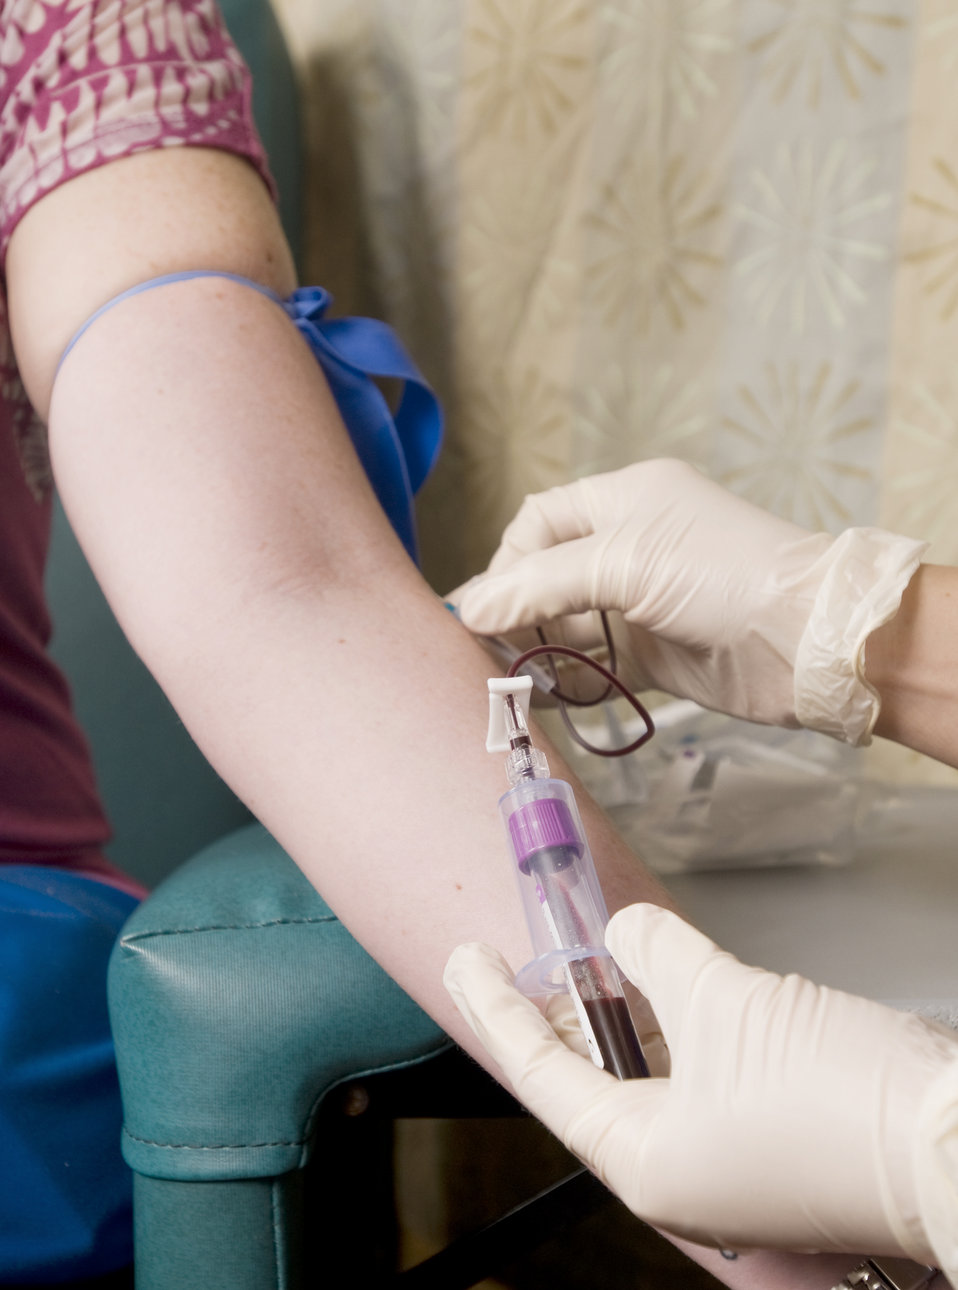 This image depicts a female patient seated in a clinic, who was in the process of having some blood extracted from her left arm's antecubital vein during a phlebotomy procedure. The gloved hands of the phlebotomist are seen securing the venipunture site: right hand holding the needle tipped catheter; right hand holding the purple-tipped blood collection vacutainer tube.